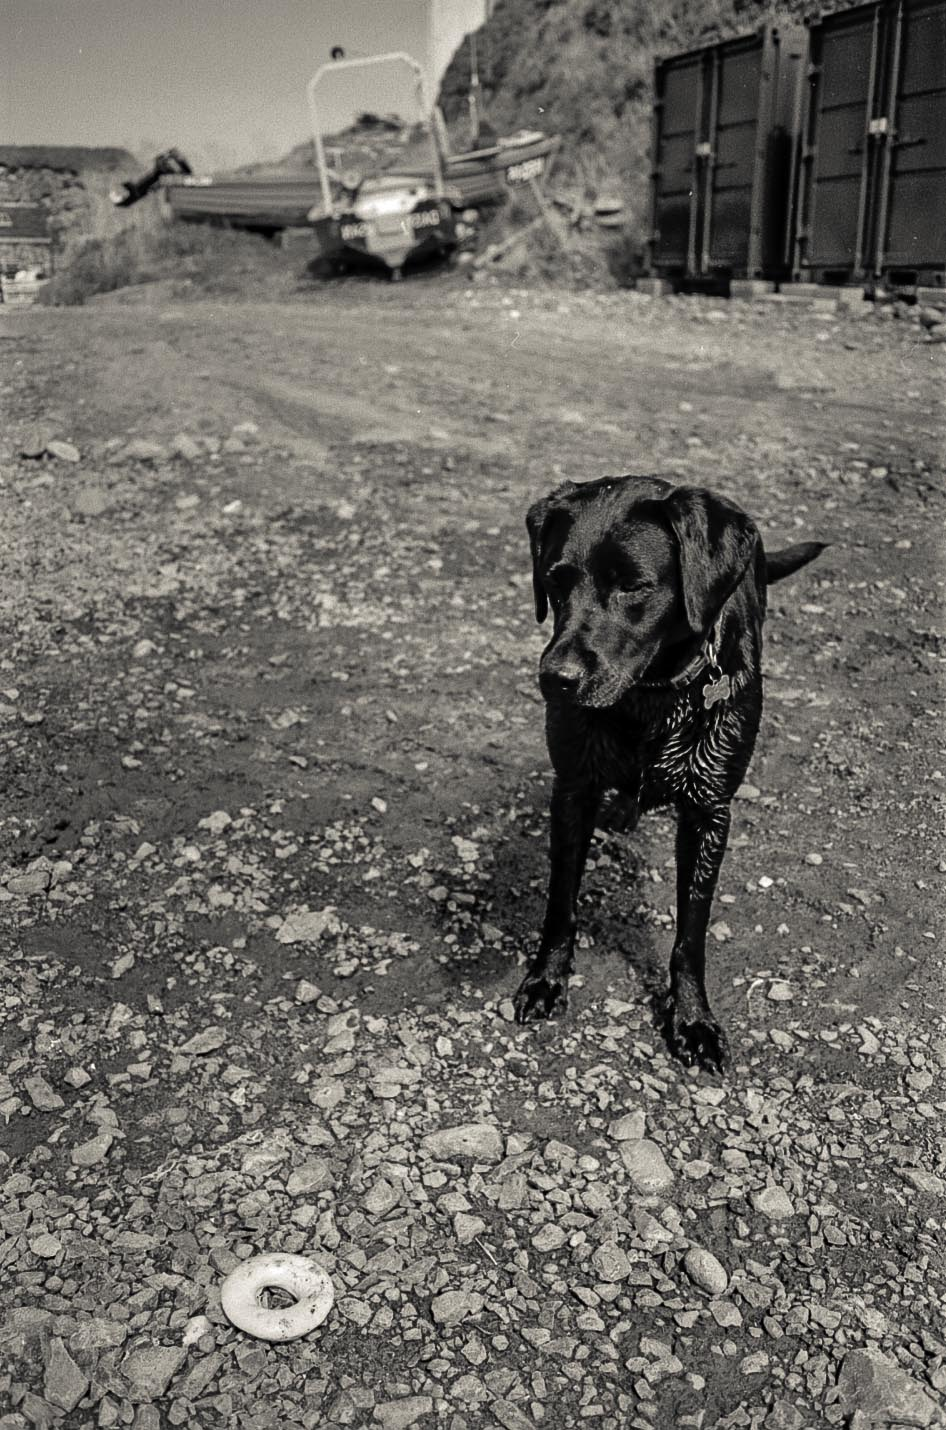 www.theonlinedarkroom.com, silver gelatin, analogue, analog, film, fishtown of usan, mamiya press, 65mm sekor, hp5, perceptol, Adox cha 100 ii, spur hrx